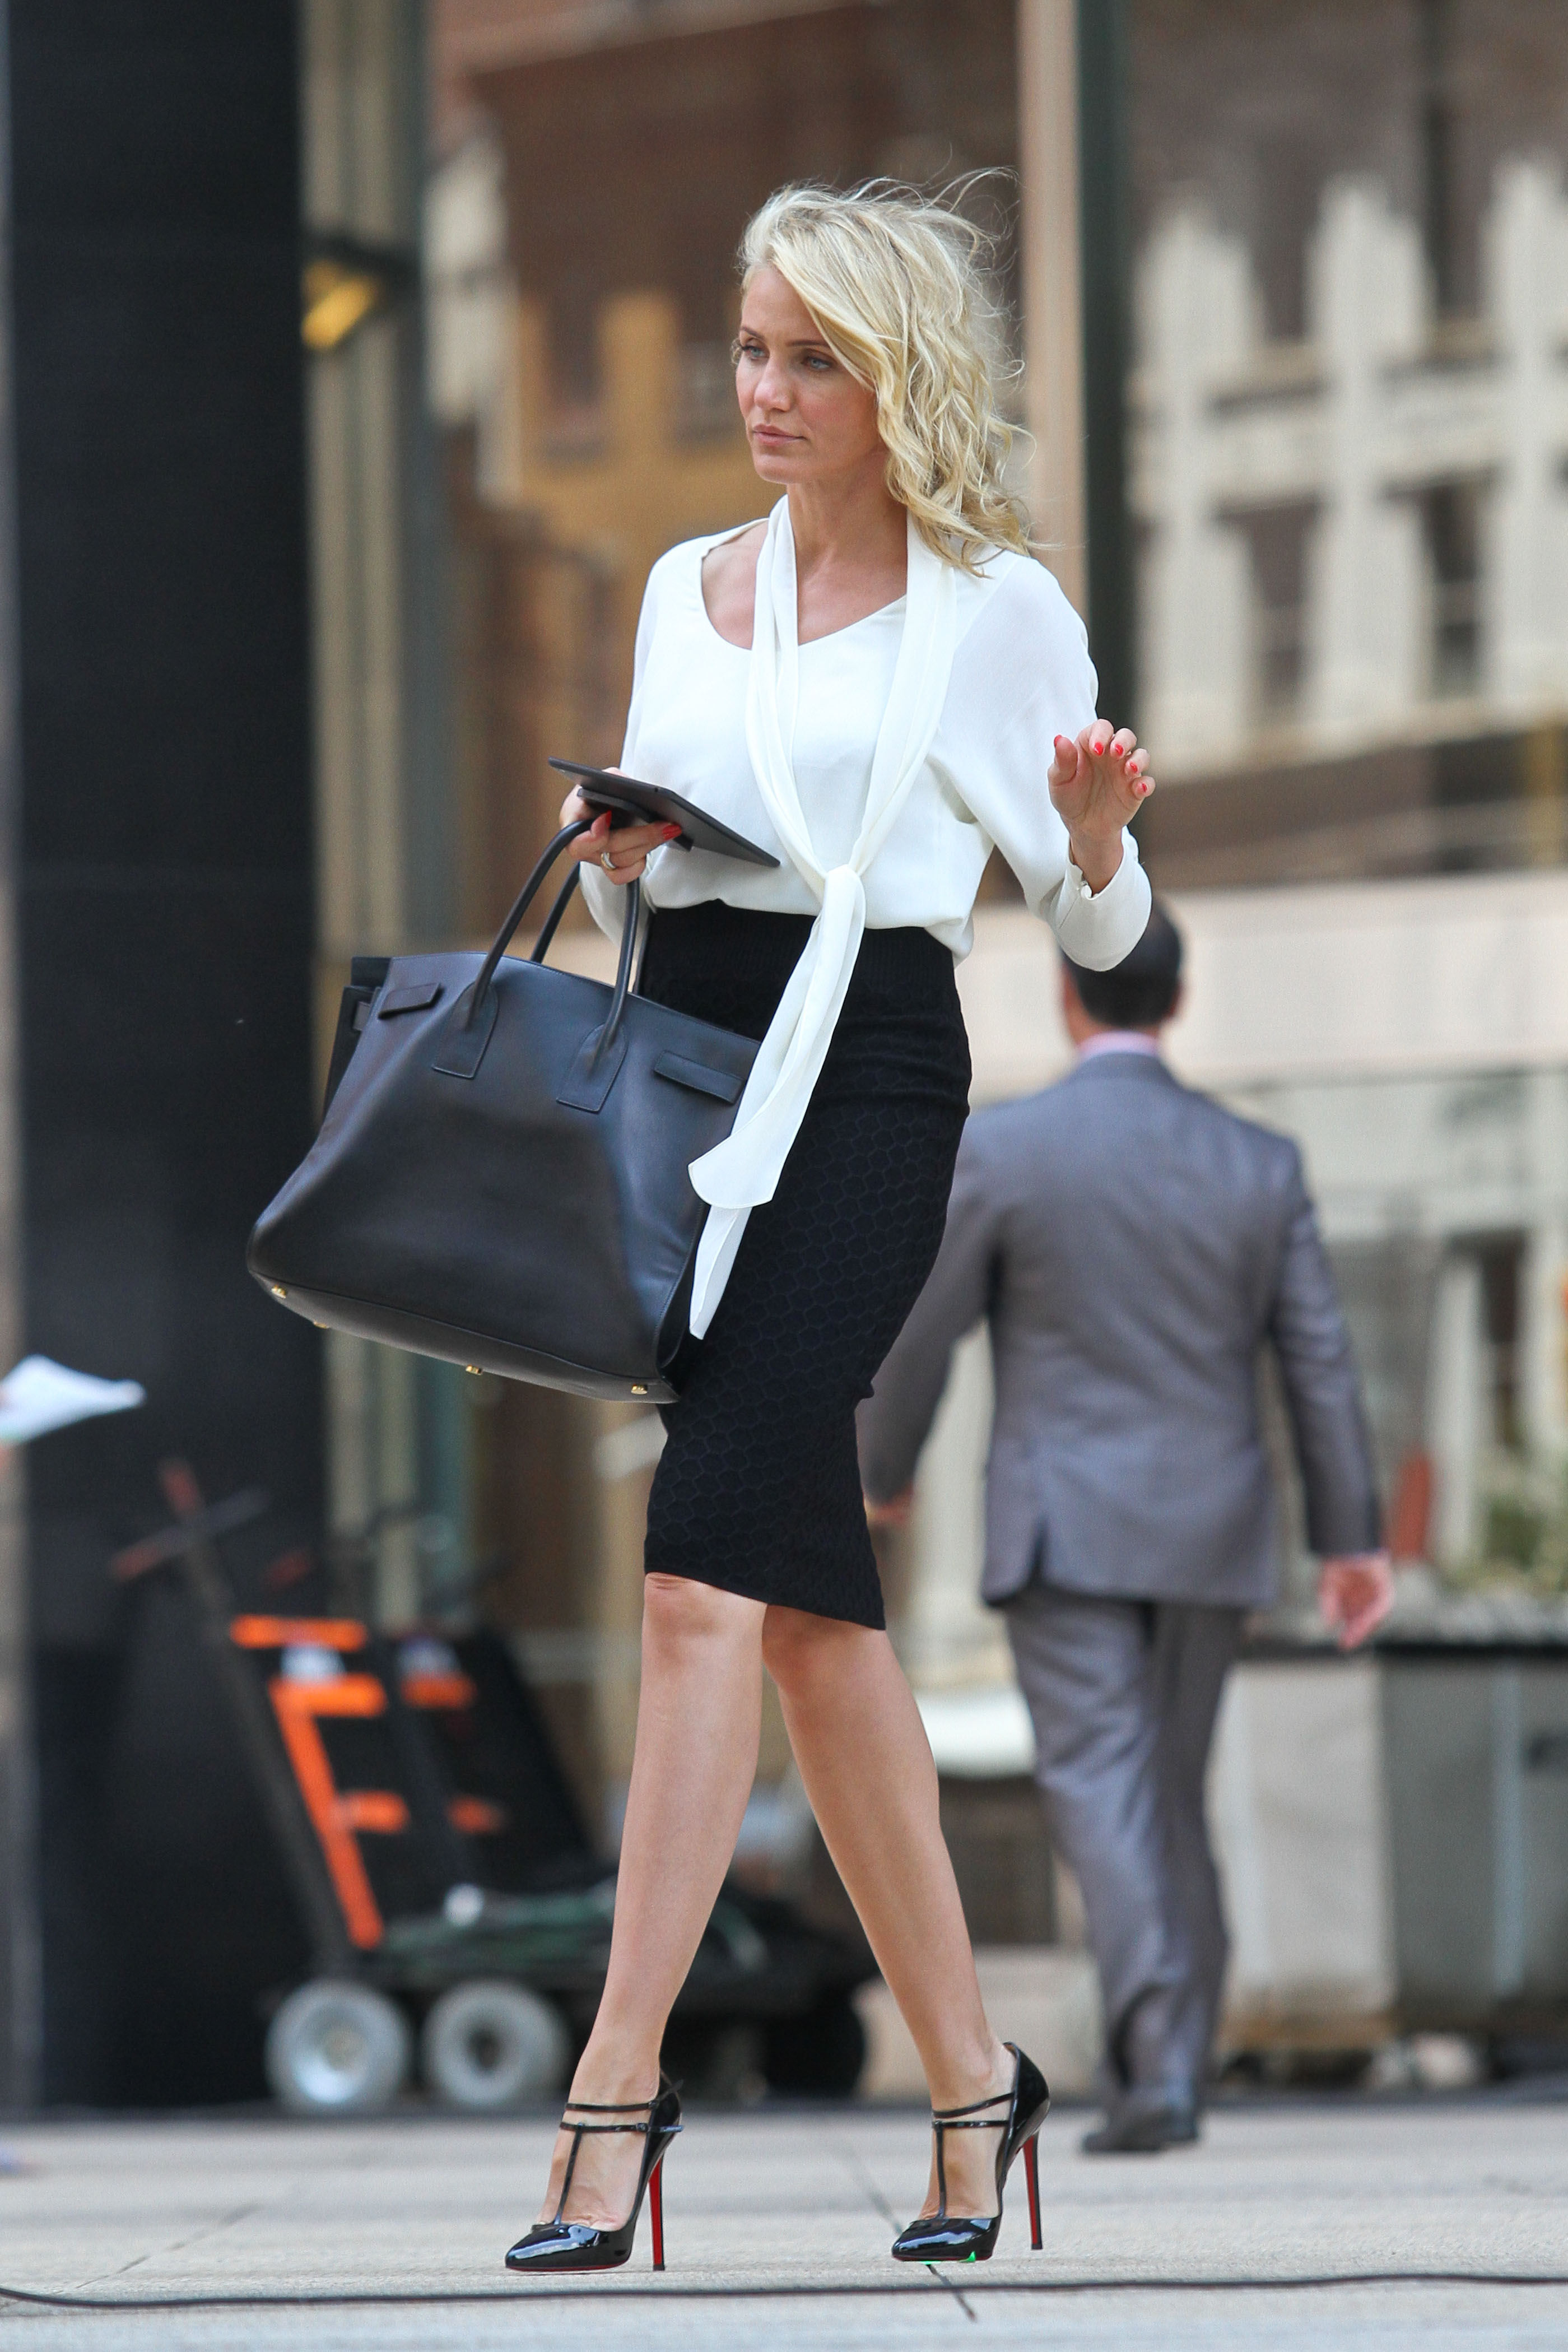 Cameron Diaz flashes her huge smile while filming